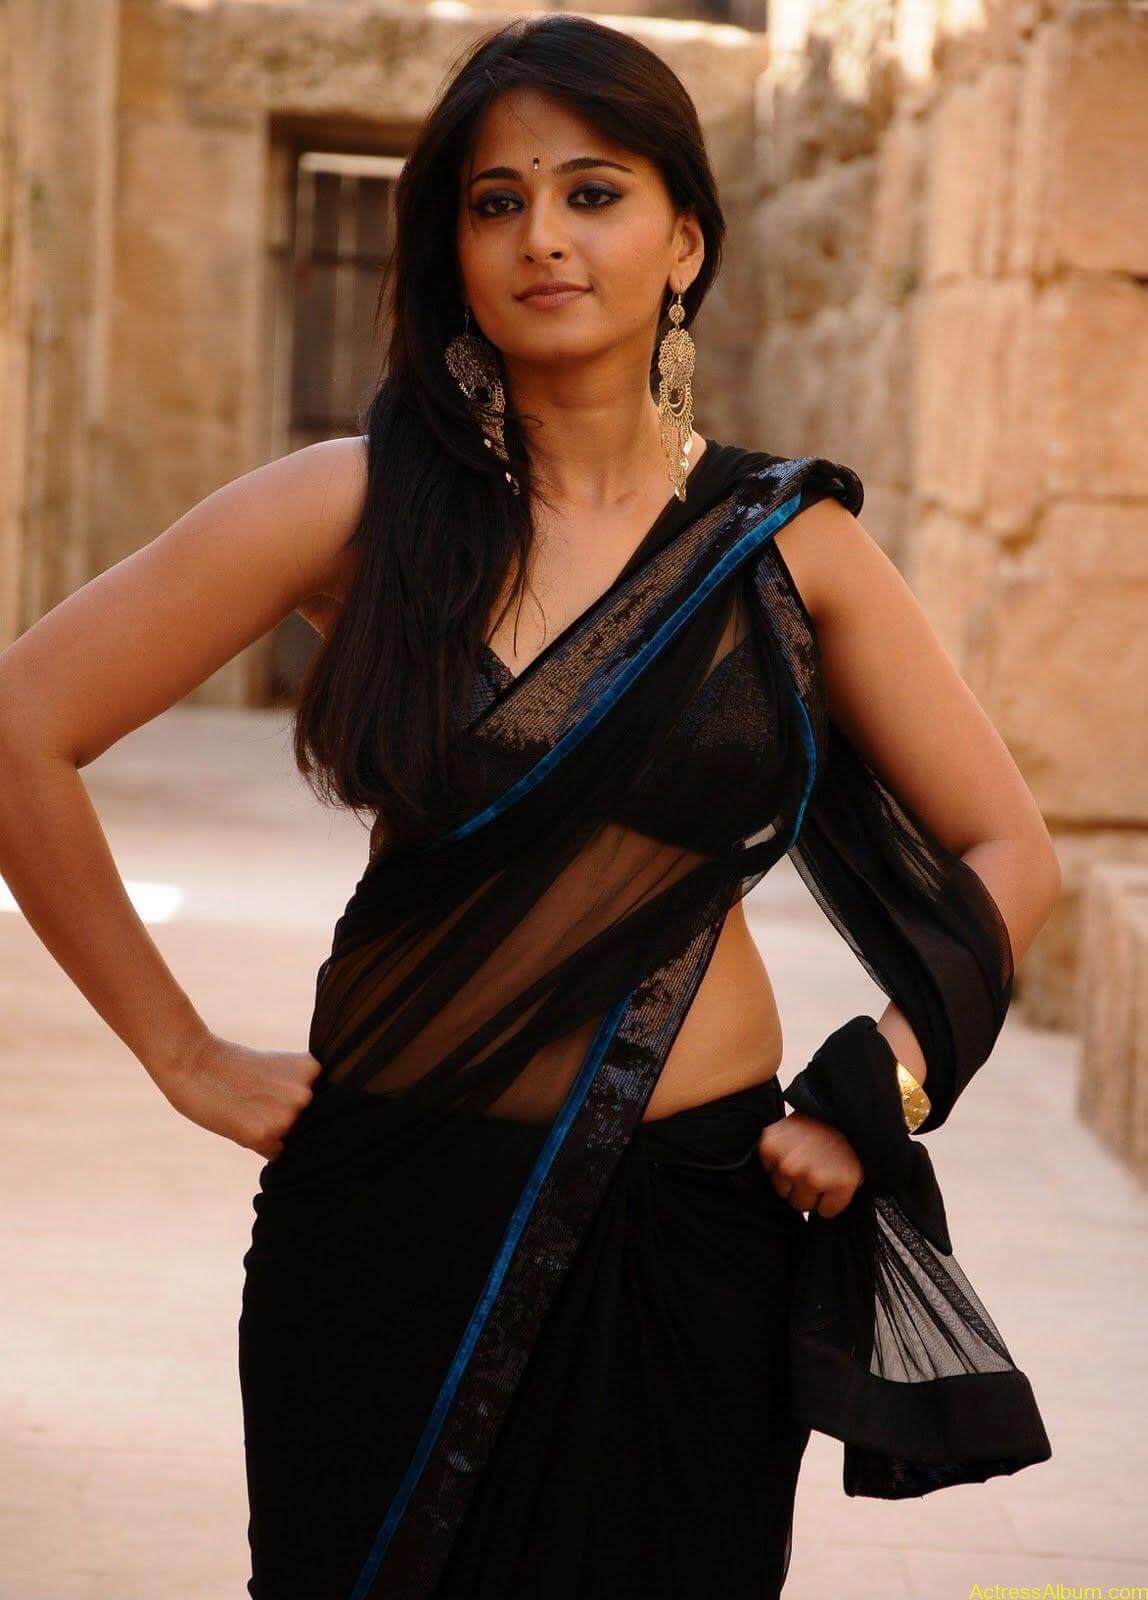 Anushka Shetty In Black Saree10